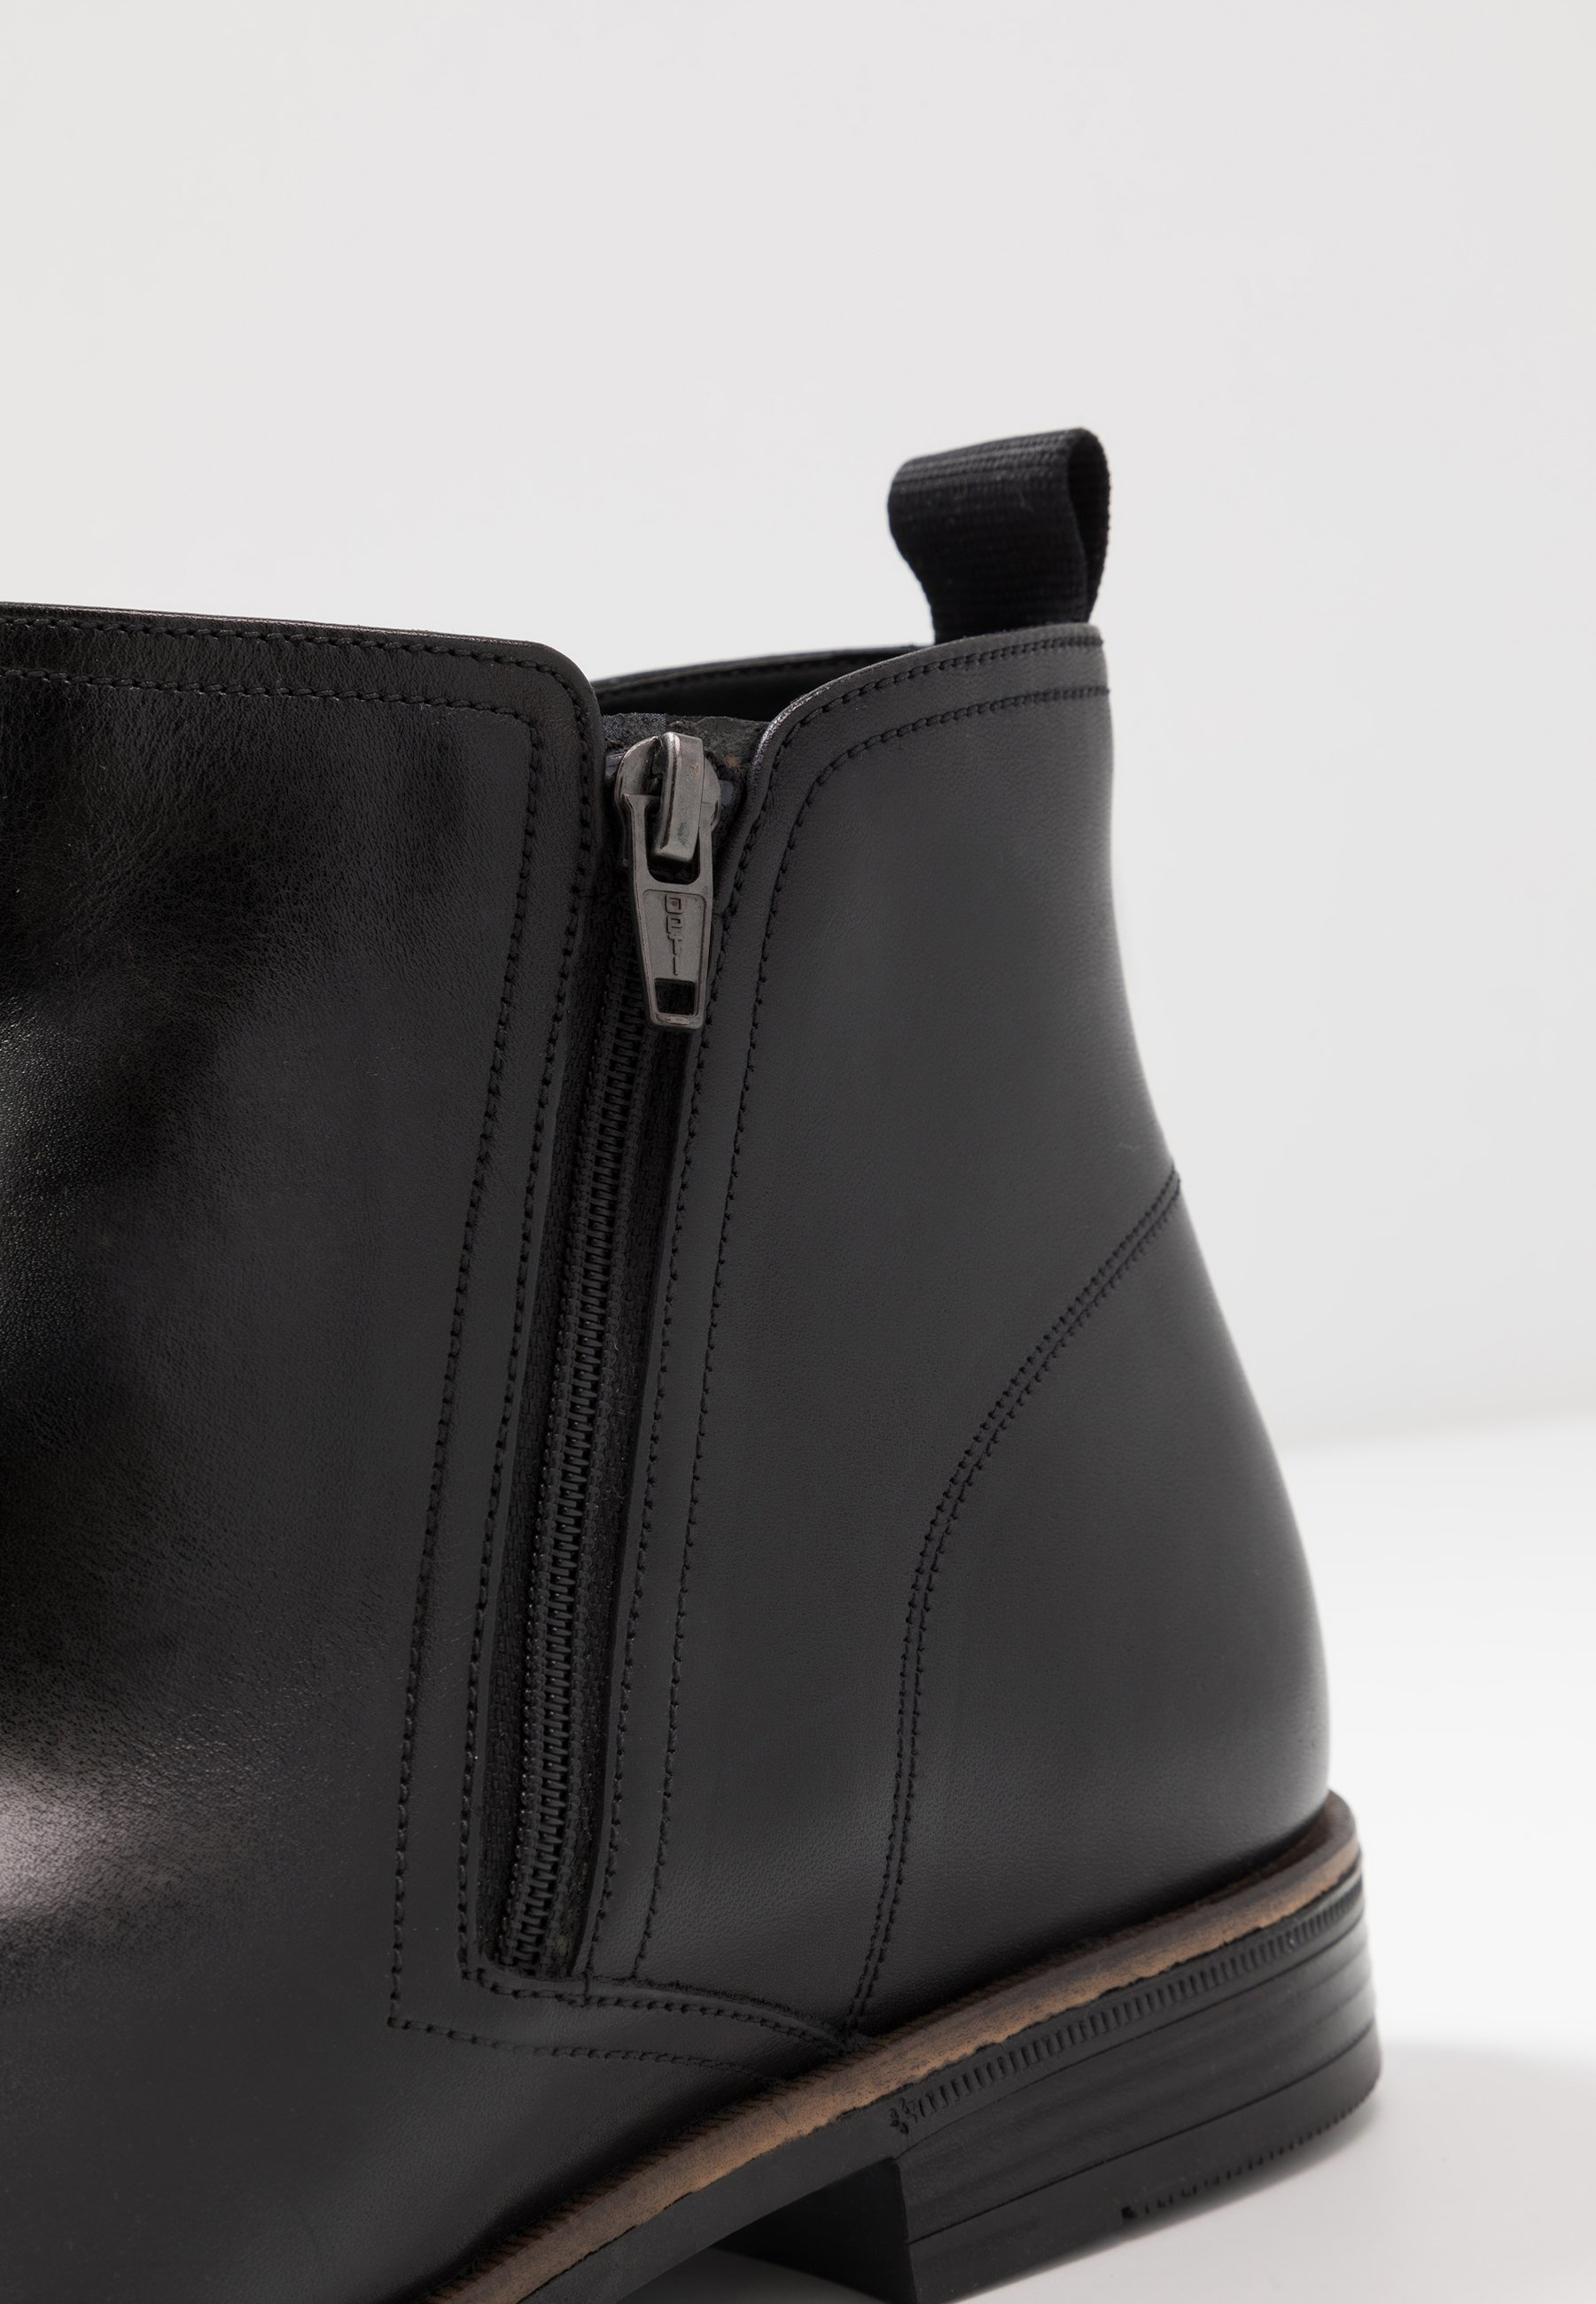 Clarks Stanford Zip - Classic Ankle Boots Black